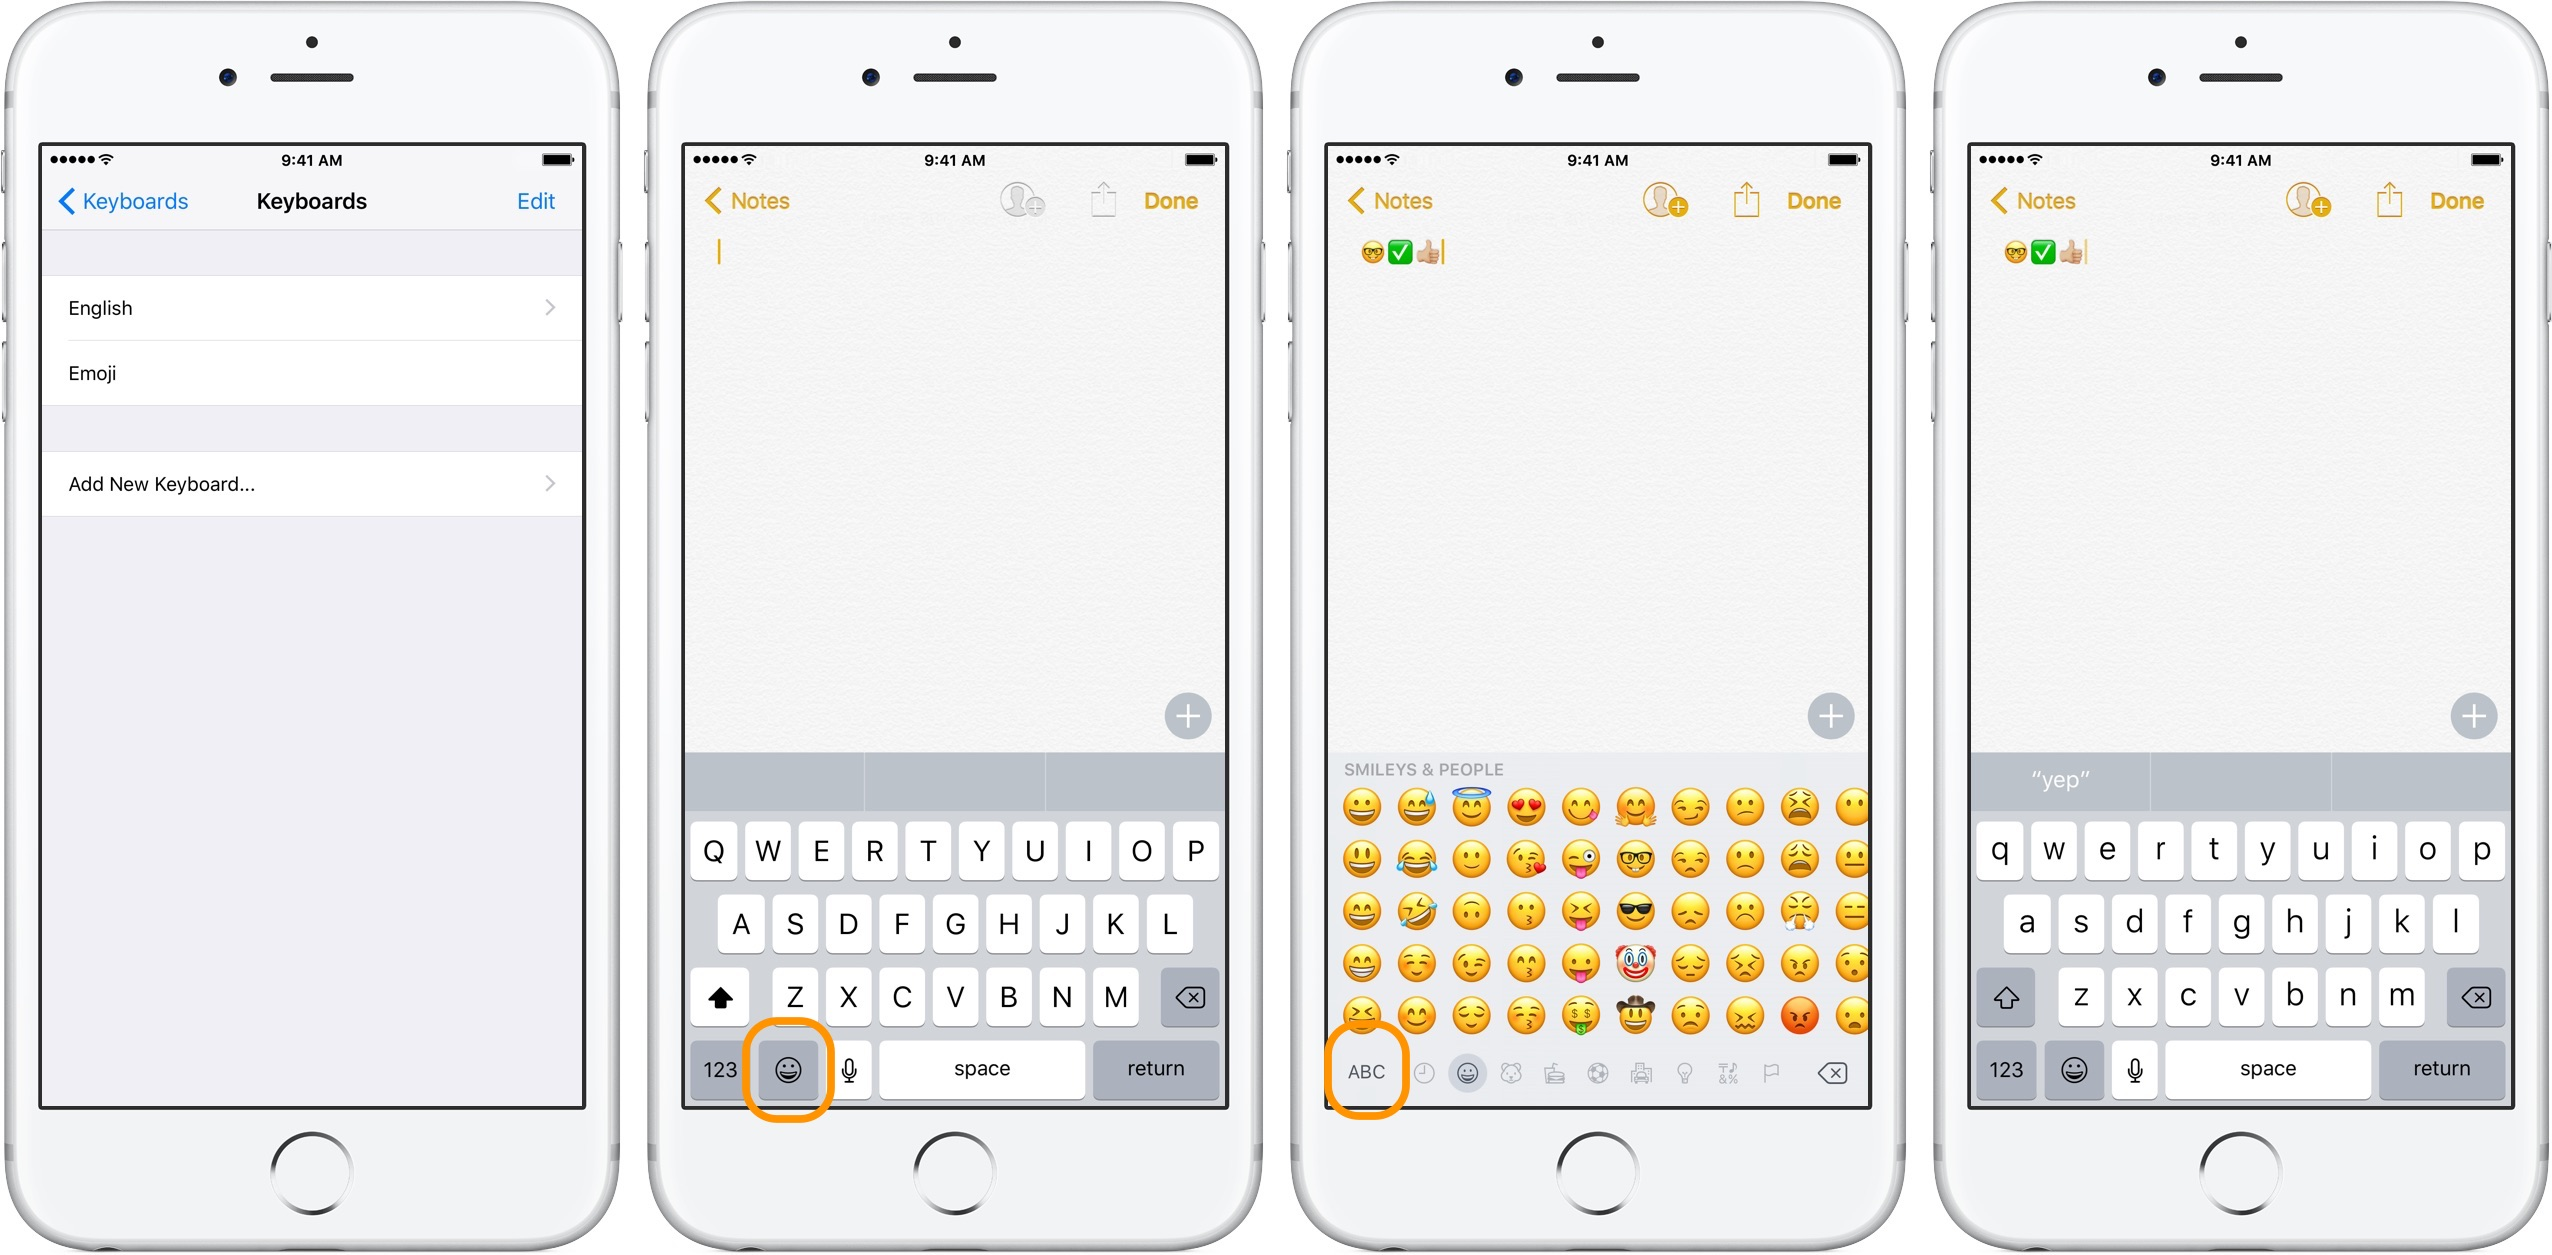 How to get the emoji keyboard on your iPhone - 9to5Mac